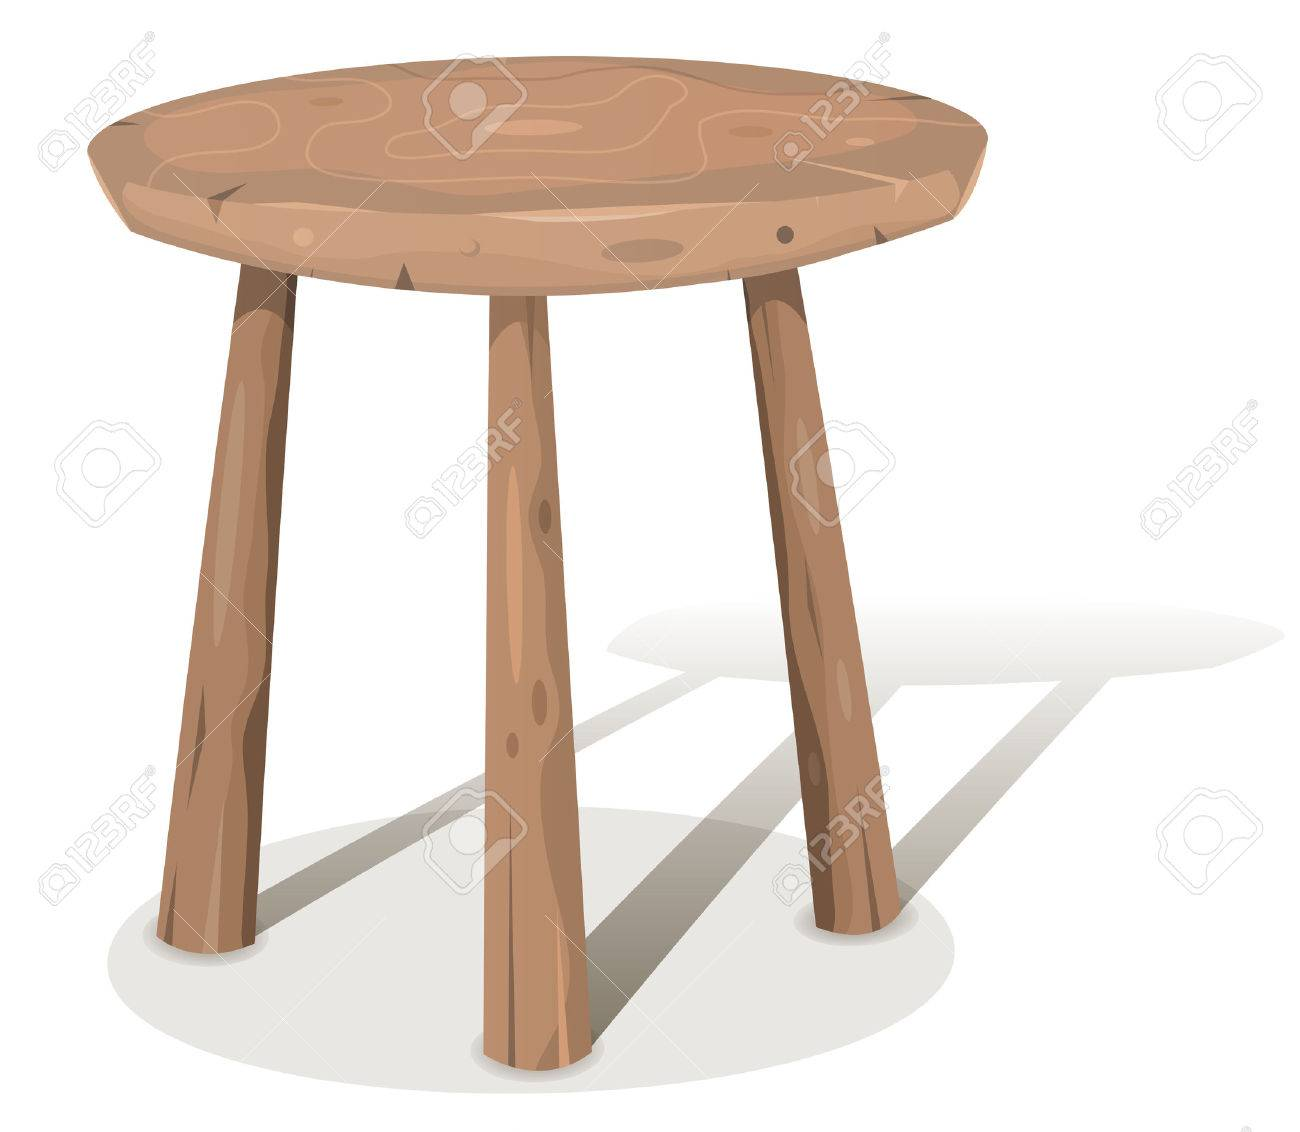 Illustration Of A Cartoon Styled Wooden Stool Or Table With Shadows Stockfoto